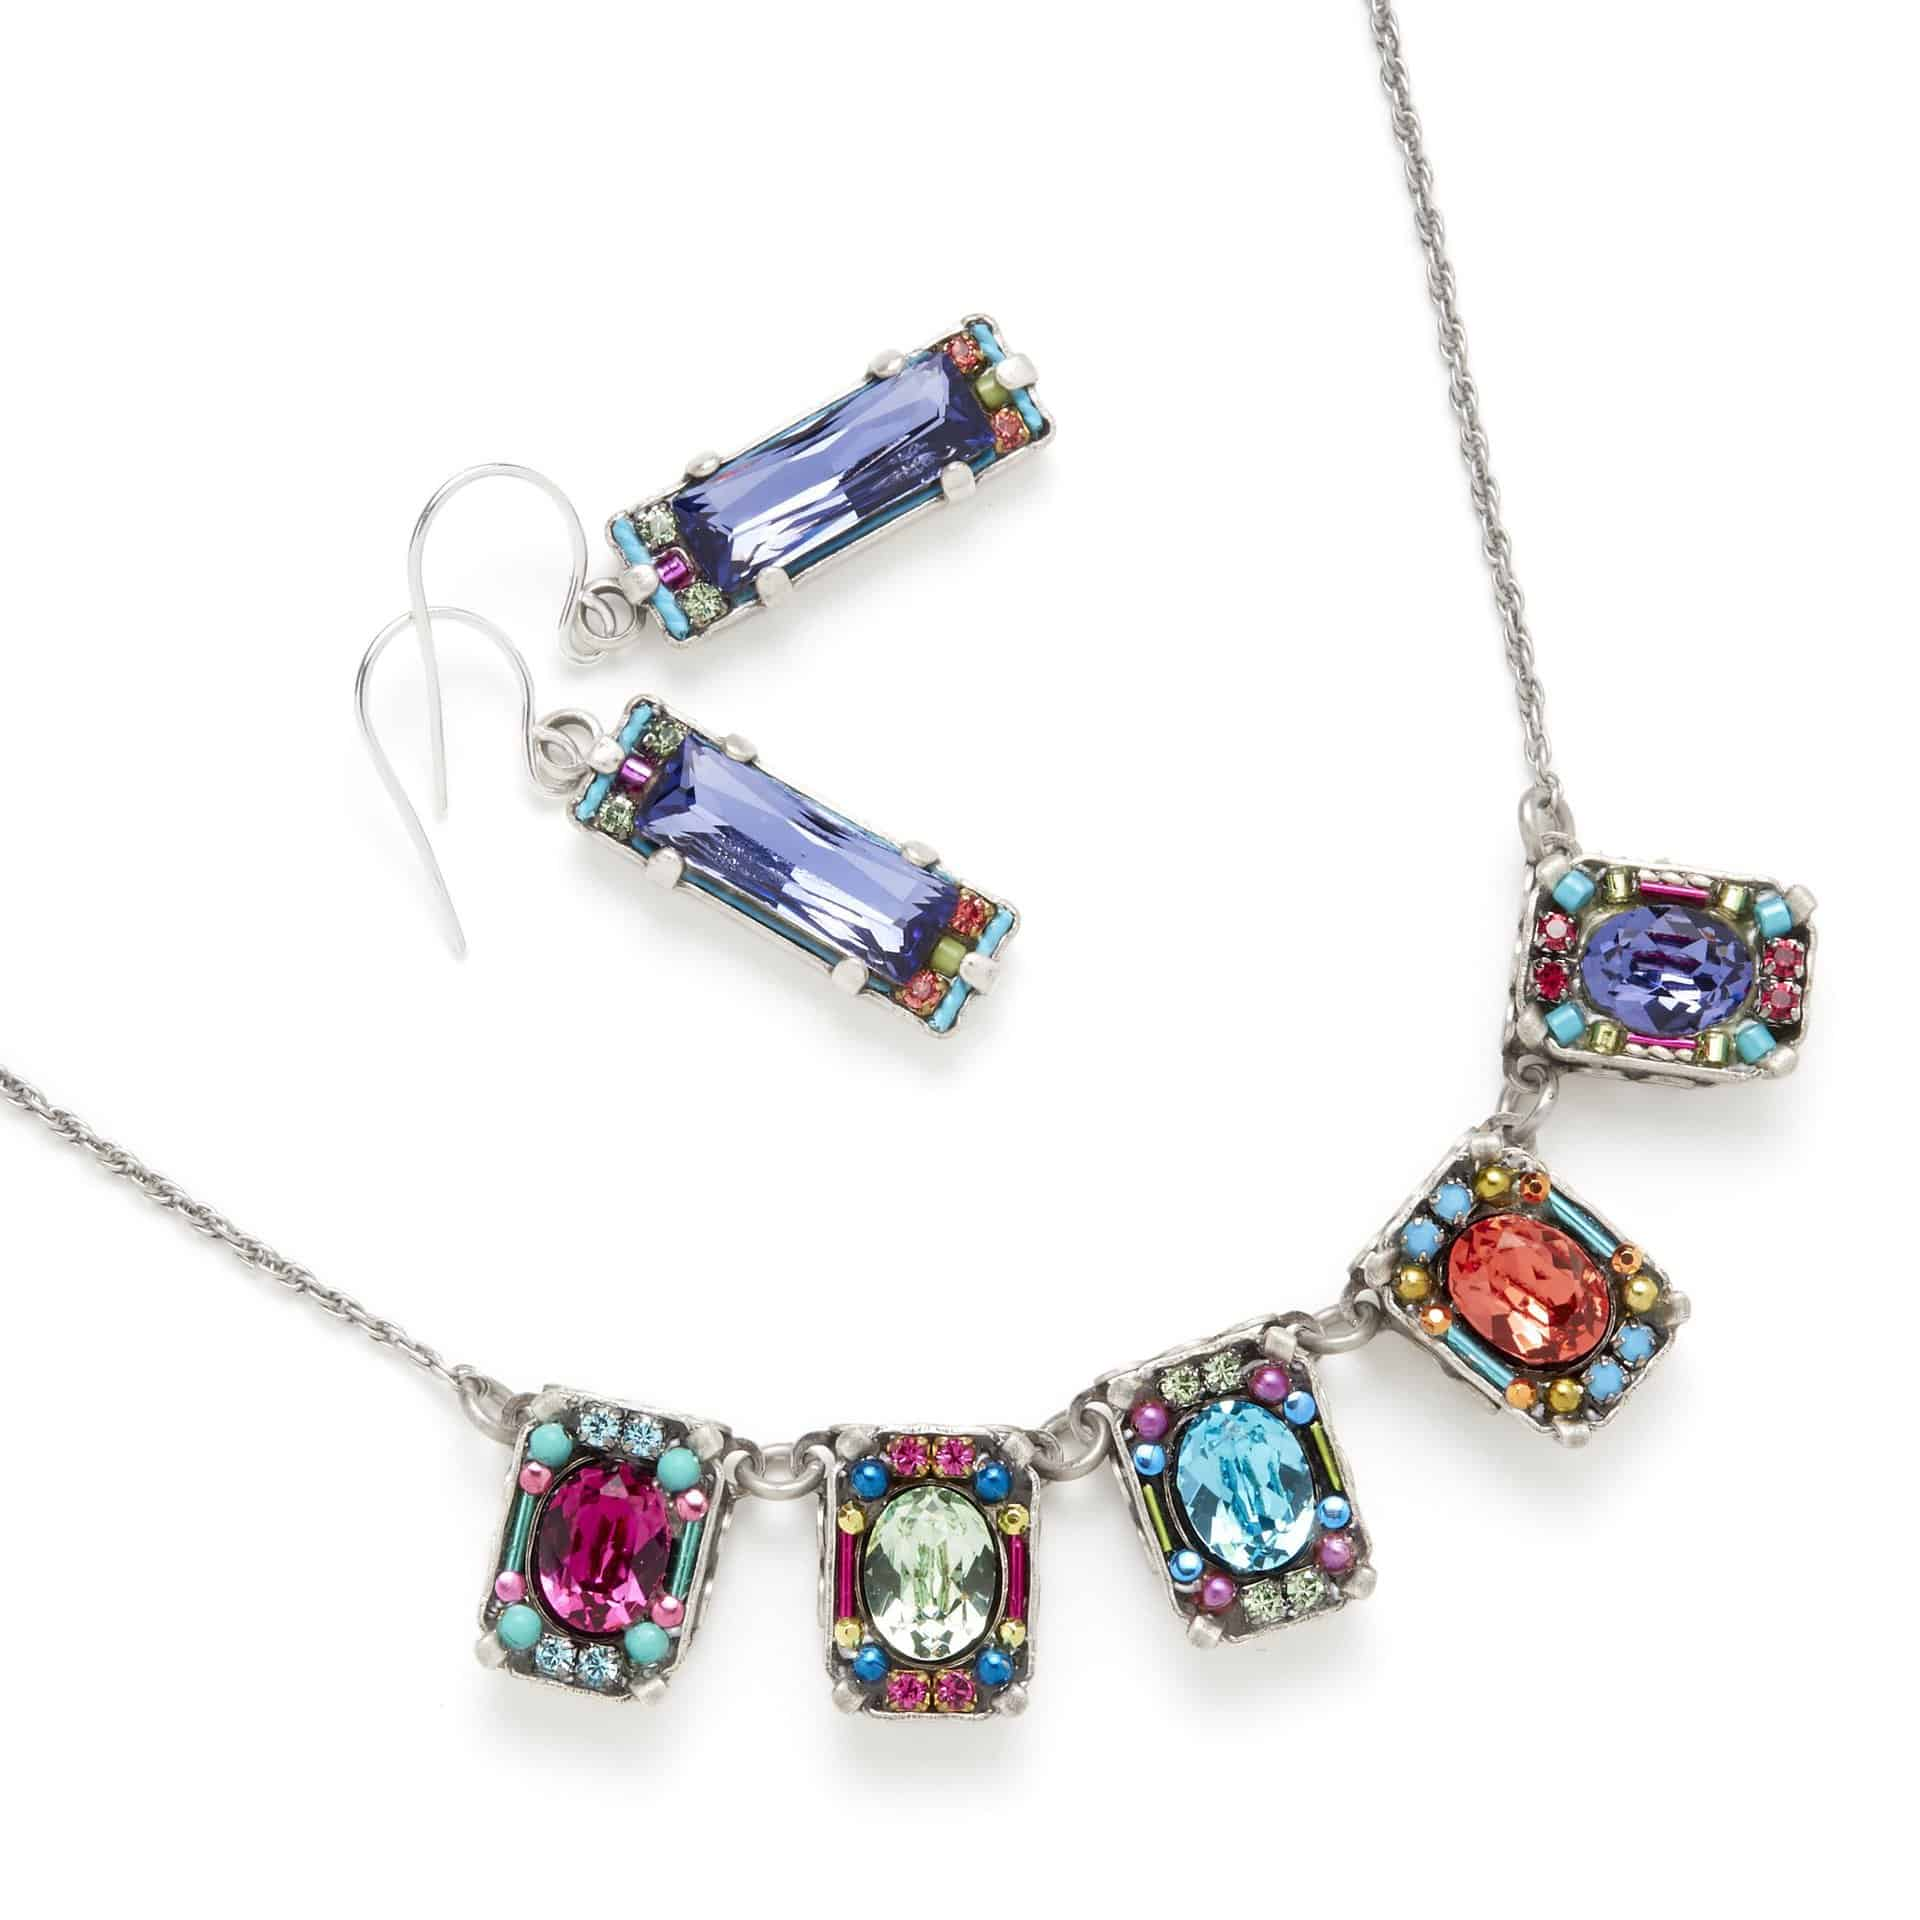 Composite of jewelry clipped out for e-commerce.